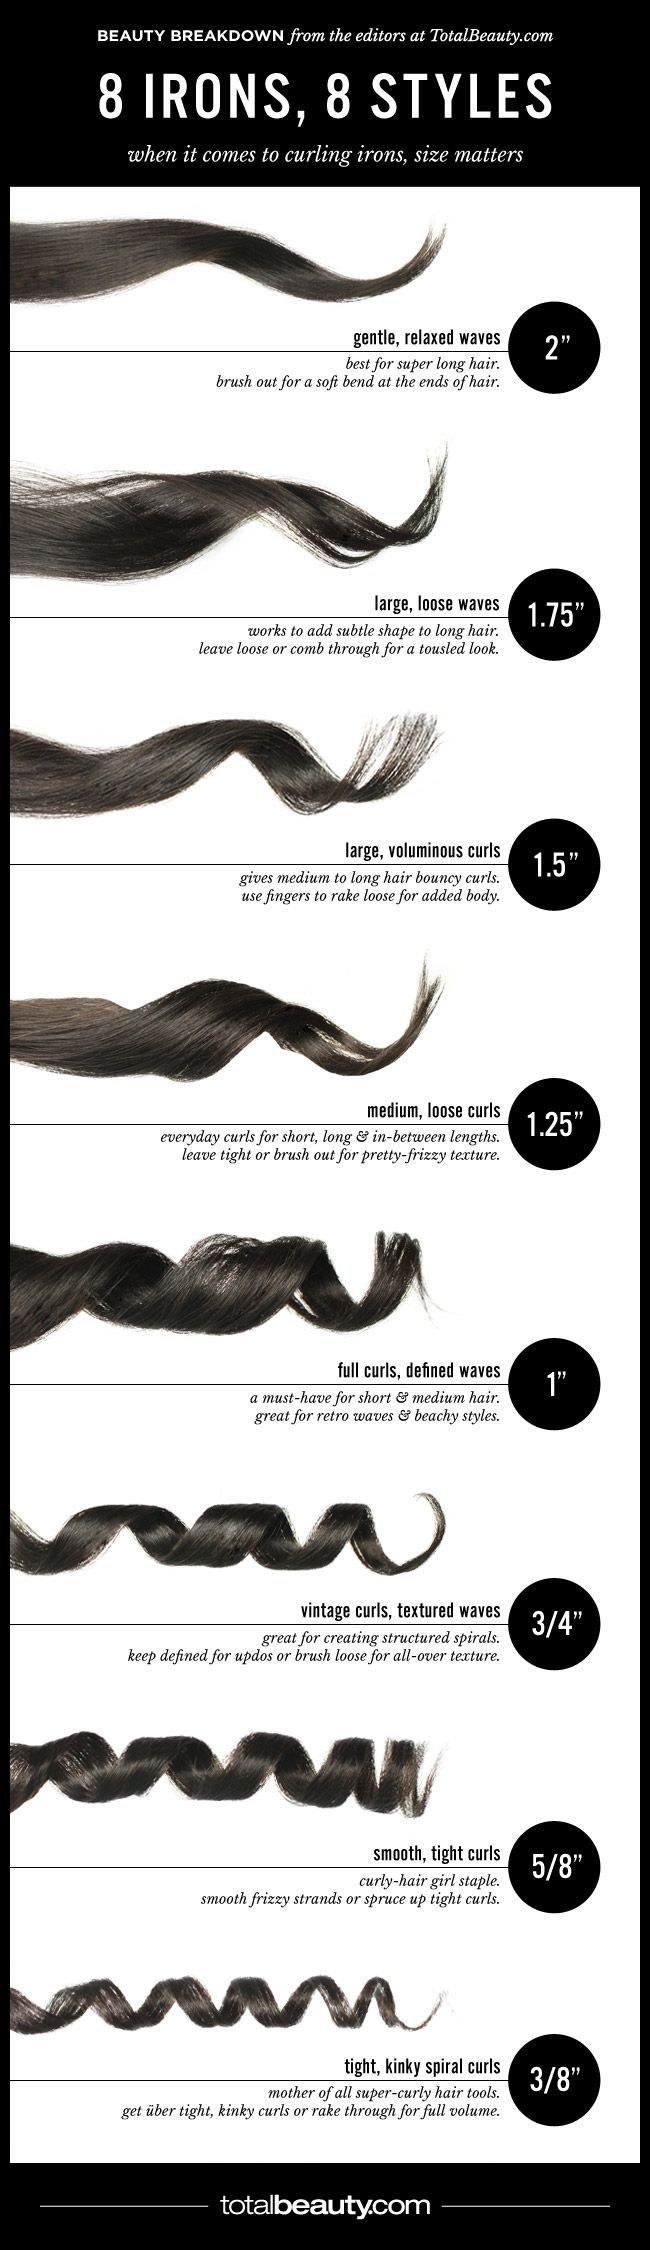 8 Curling Irons & Their Styles